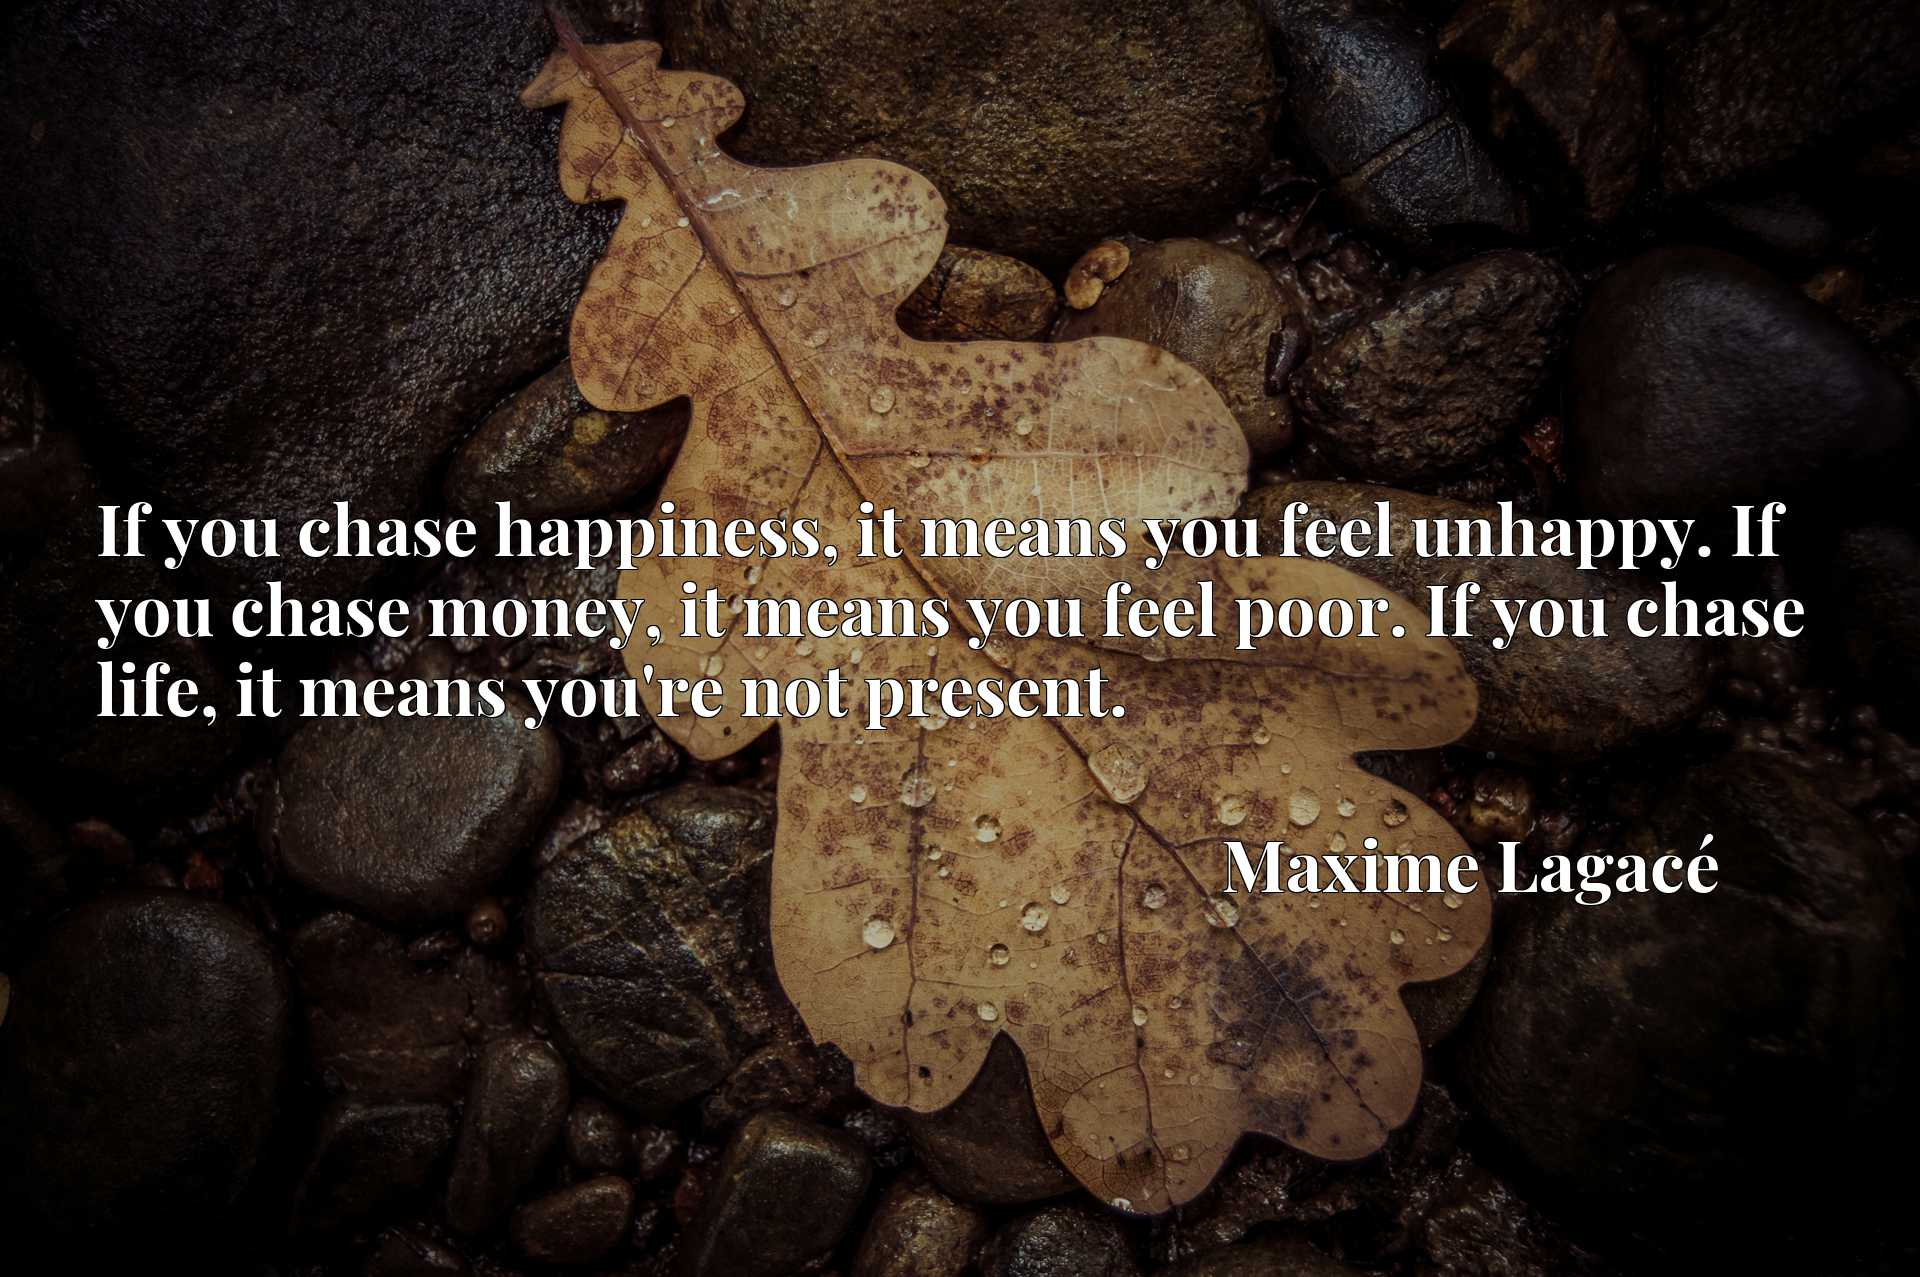 If you chase happiness, it means you feel unhappy. If you chase money, it means you feel poor. If you chase life, it means you're not present.